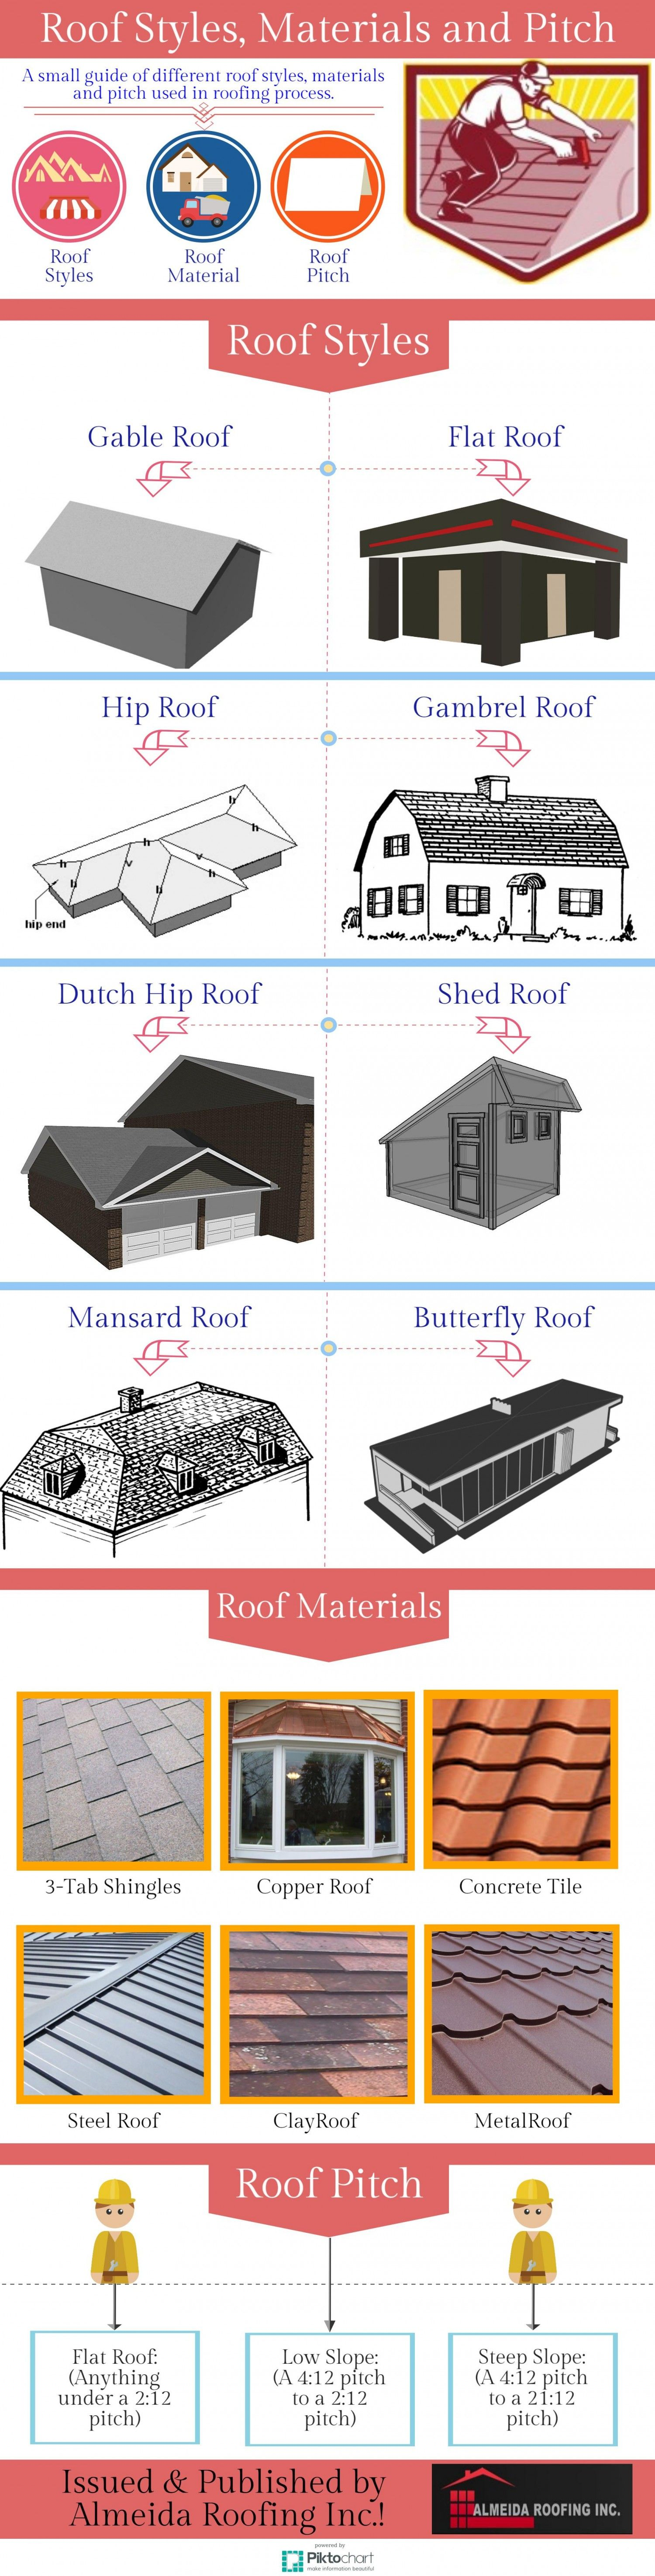 Roof styles materials and pitch info graphics to show different